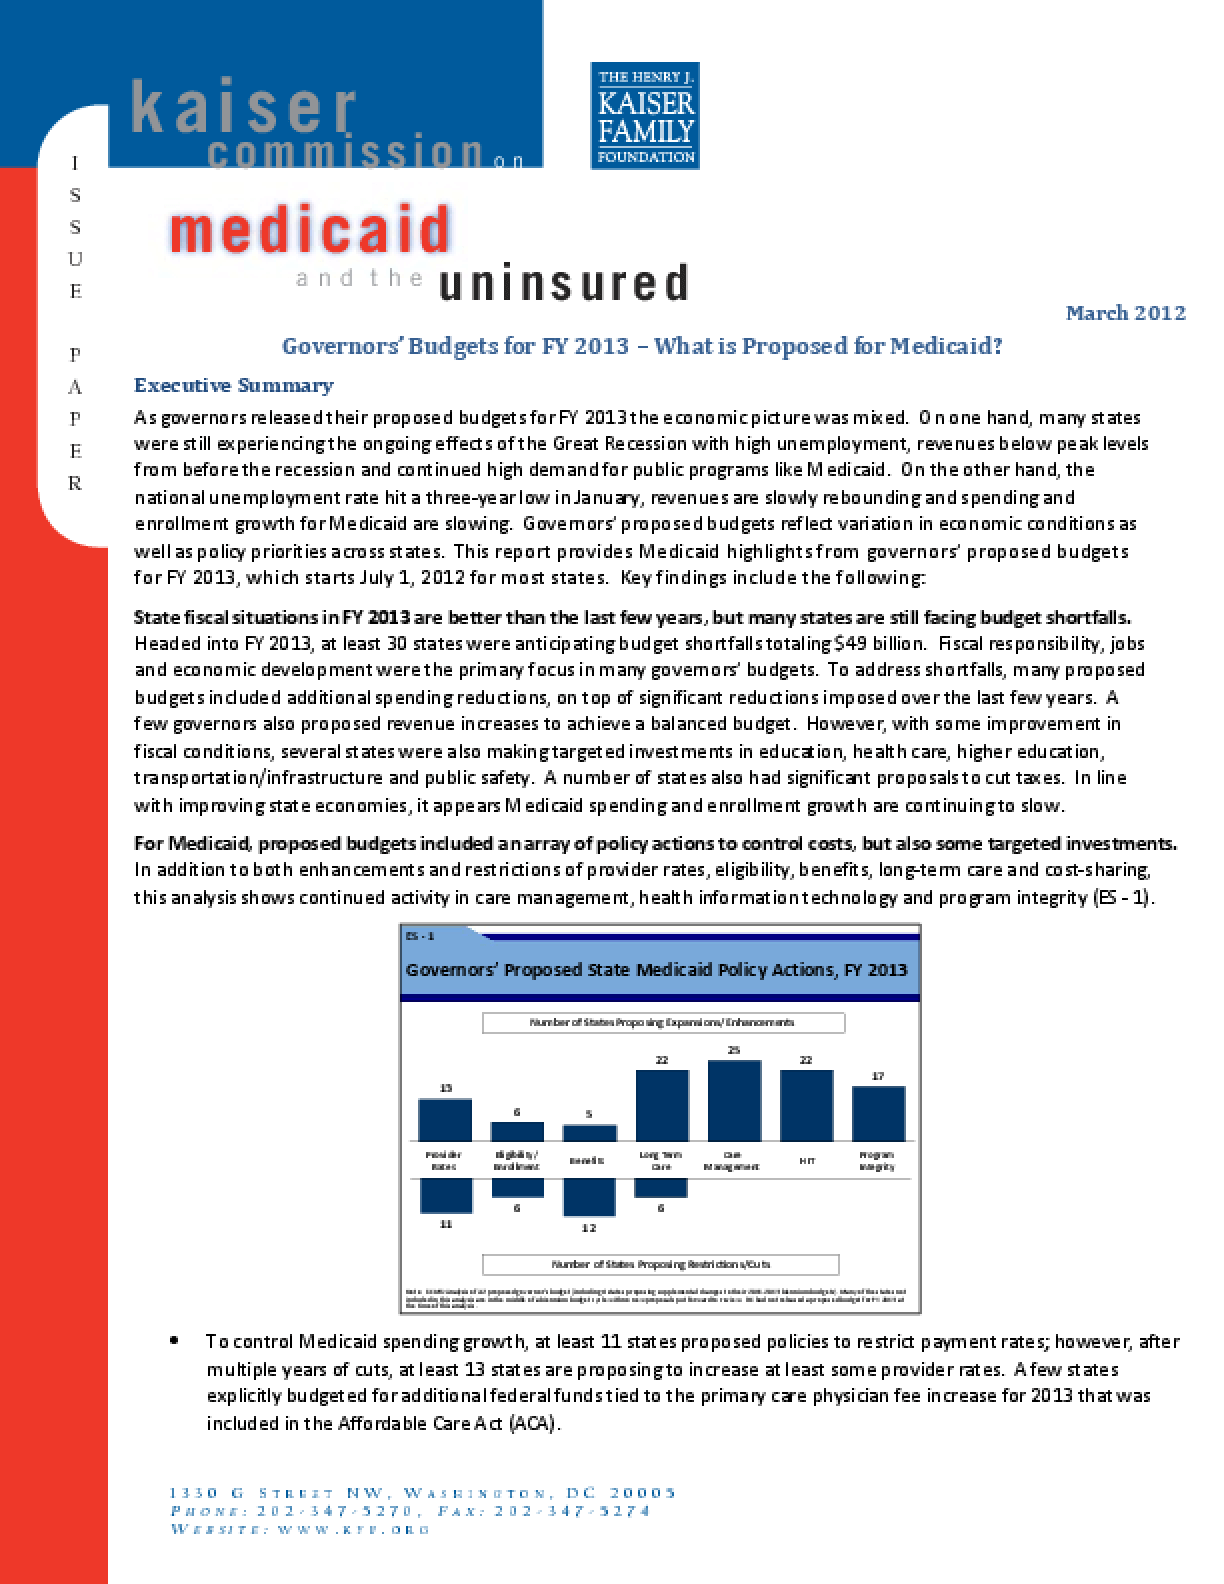 Governors' Budgets for FY 2013 - What Is Proposed for Medicaid?